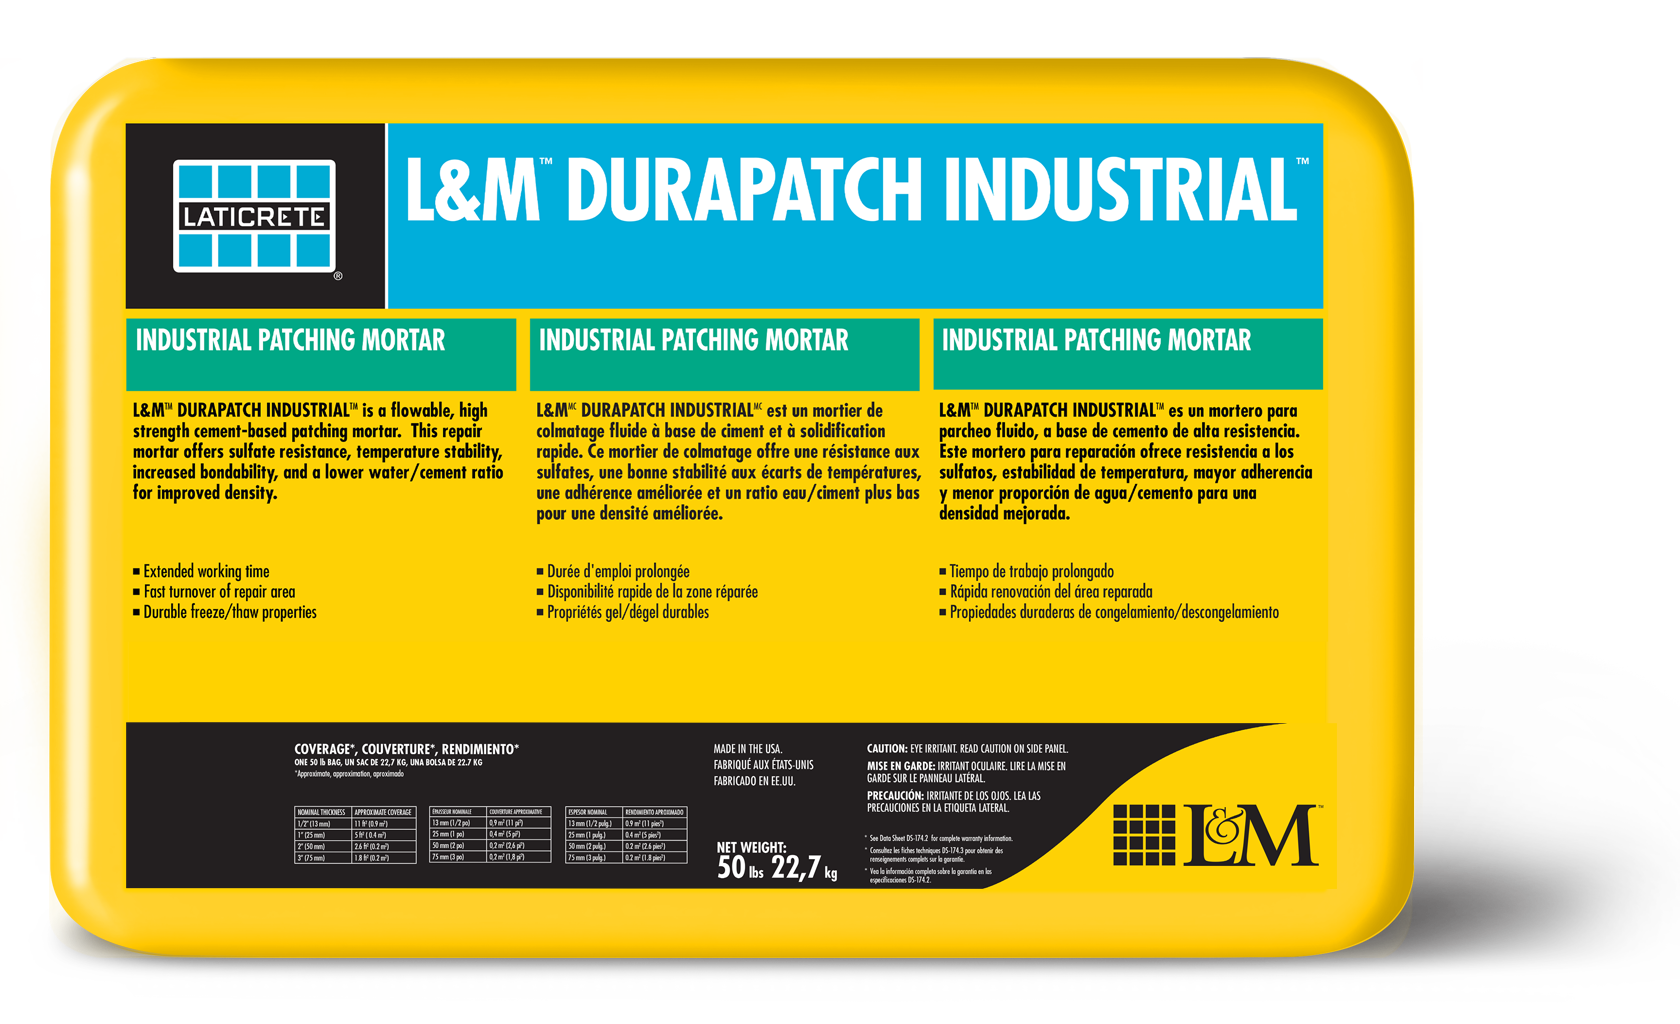 Durapatch Industrial